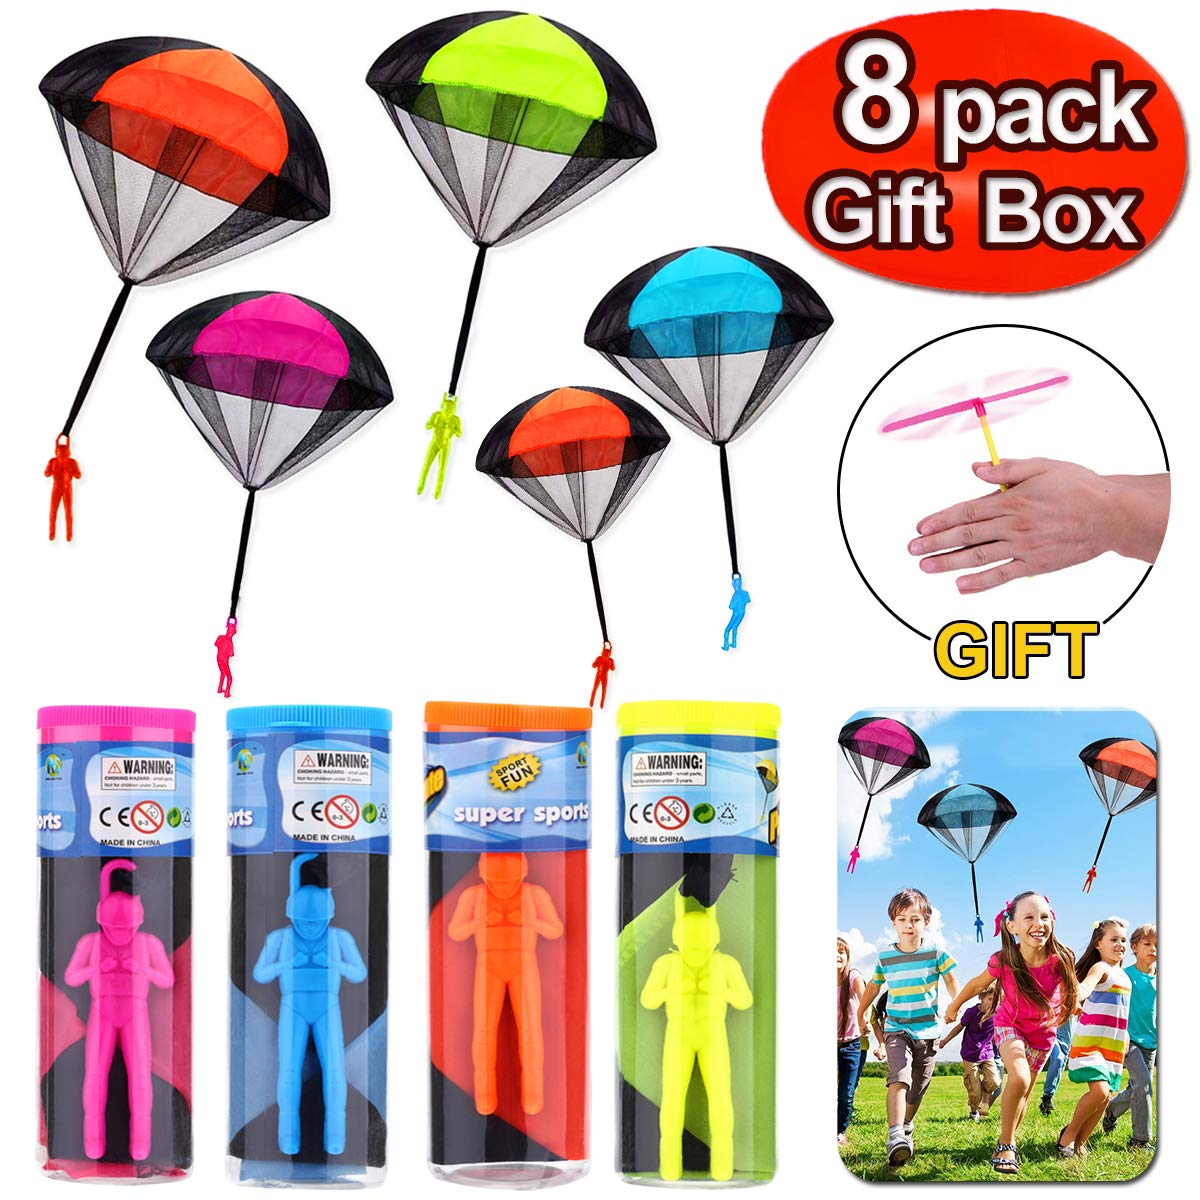 Parachute Toys - 8 Pack Tangle Free Hand Throwing Toy Outdoor Children Parachute Toys Flying Toys Skydiver Parachute Men with Launcher Party Favor Supplies for Kids Age 3-12 Years Back to School Gift